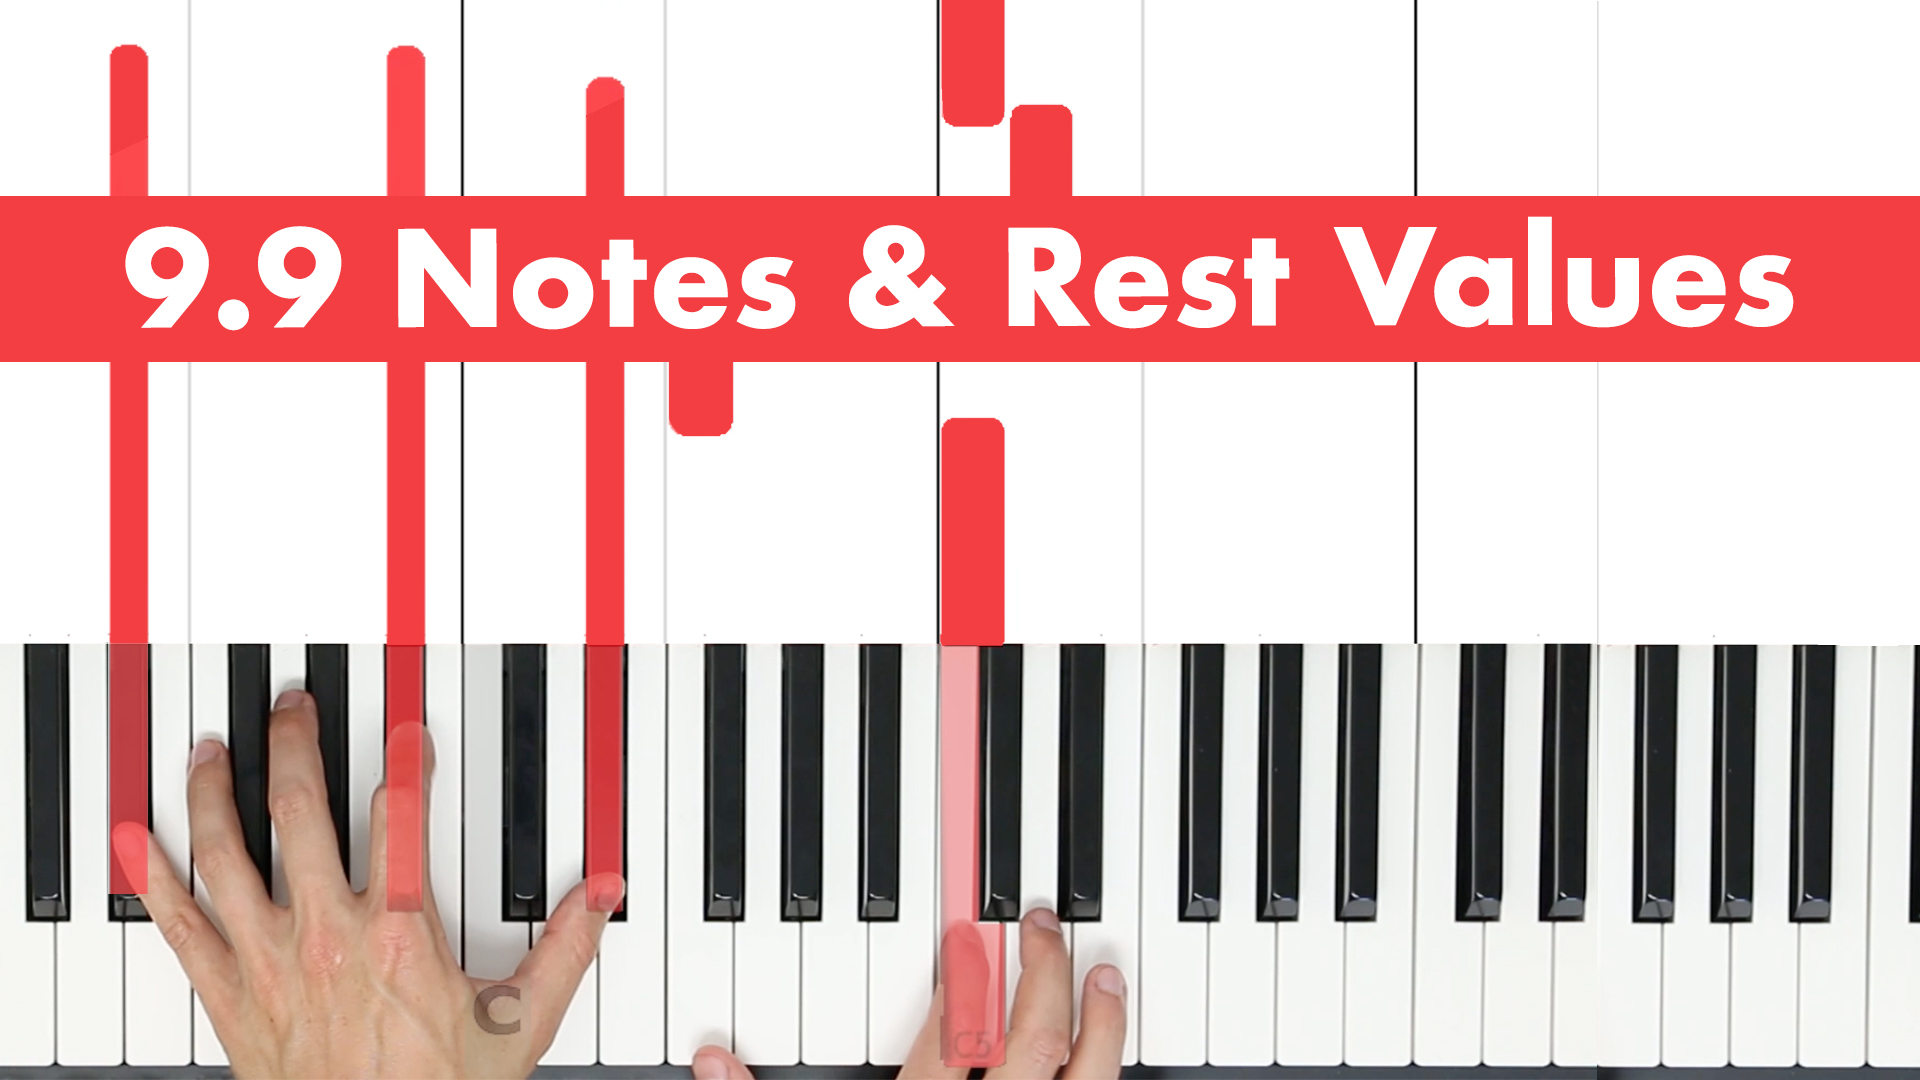 9.9 Notes & Rest Values